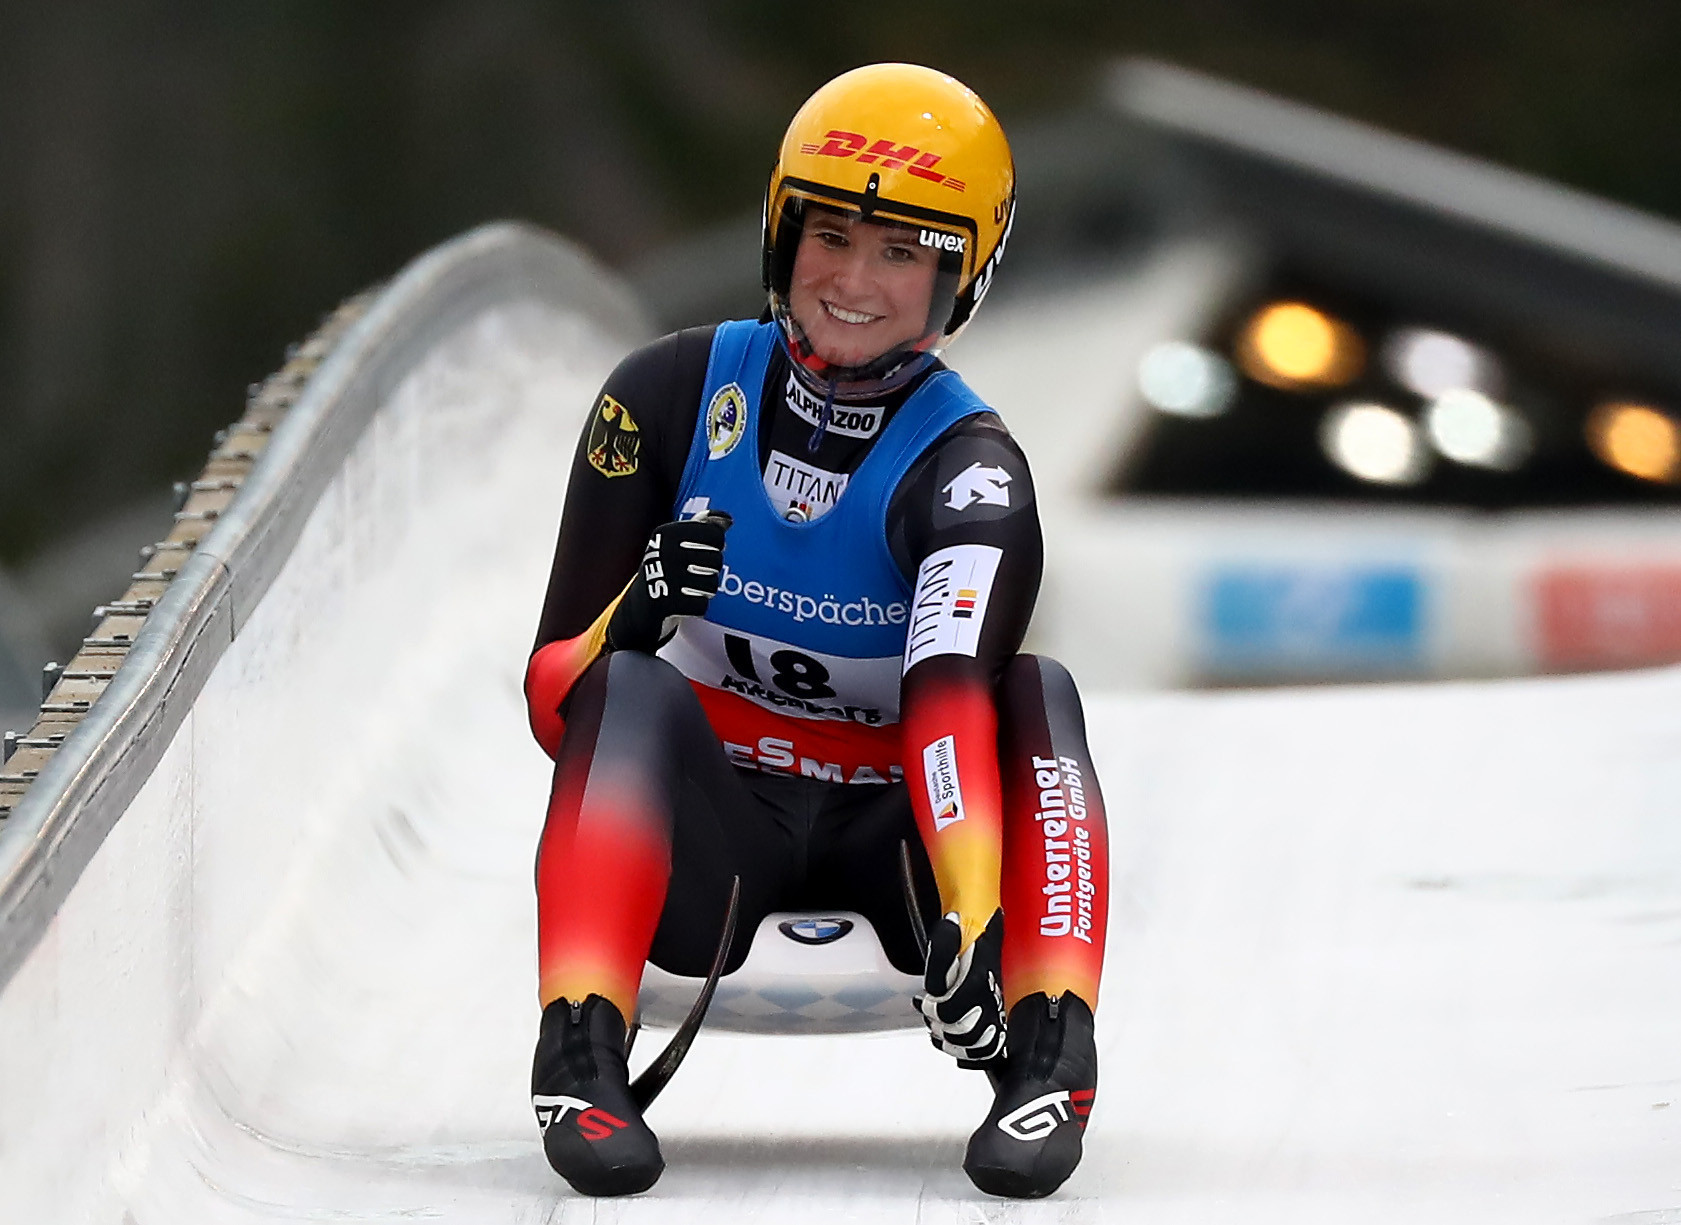 Geisenberger earns 50th Luge World Cup victory in Oberhof